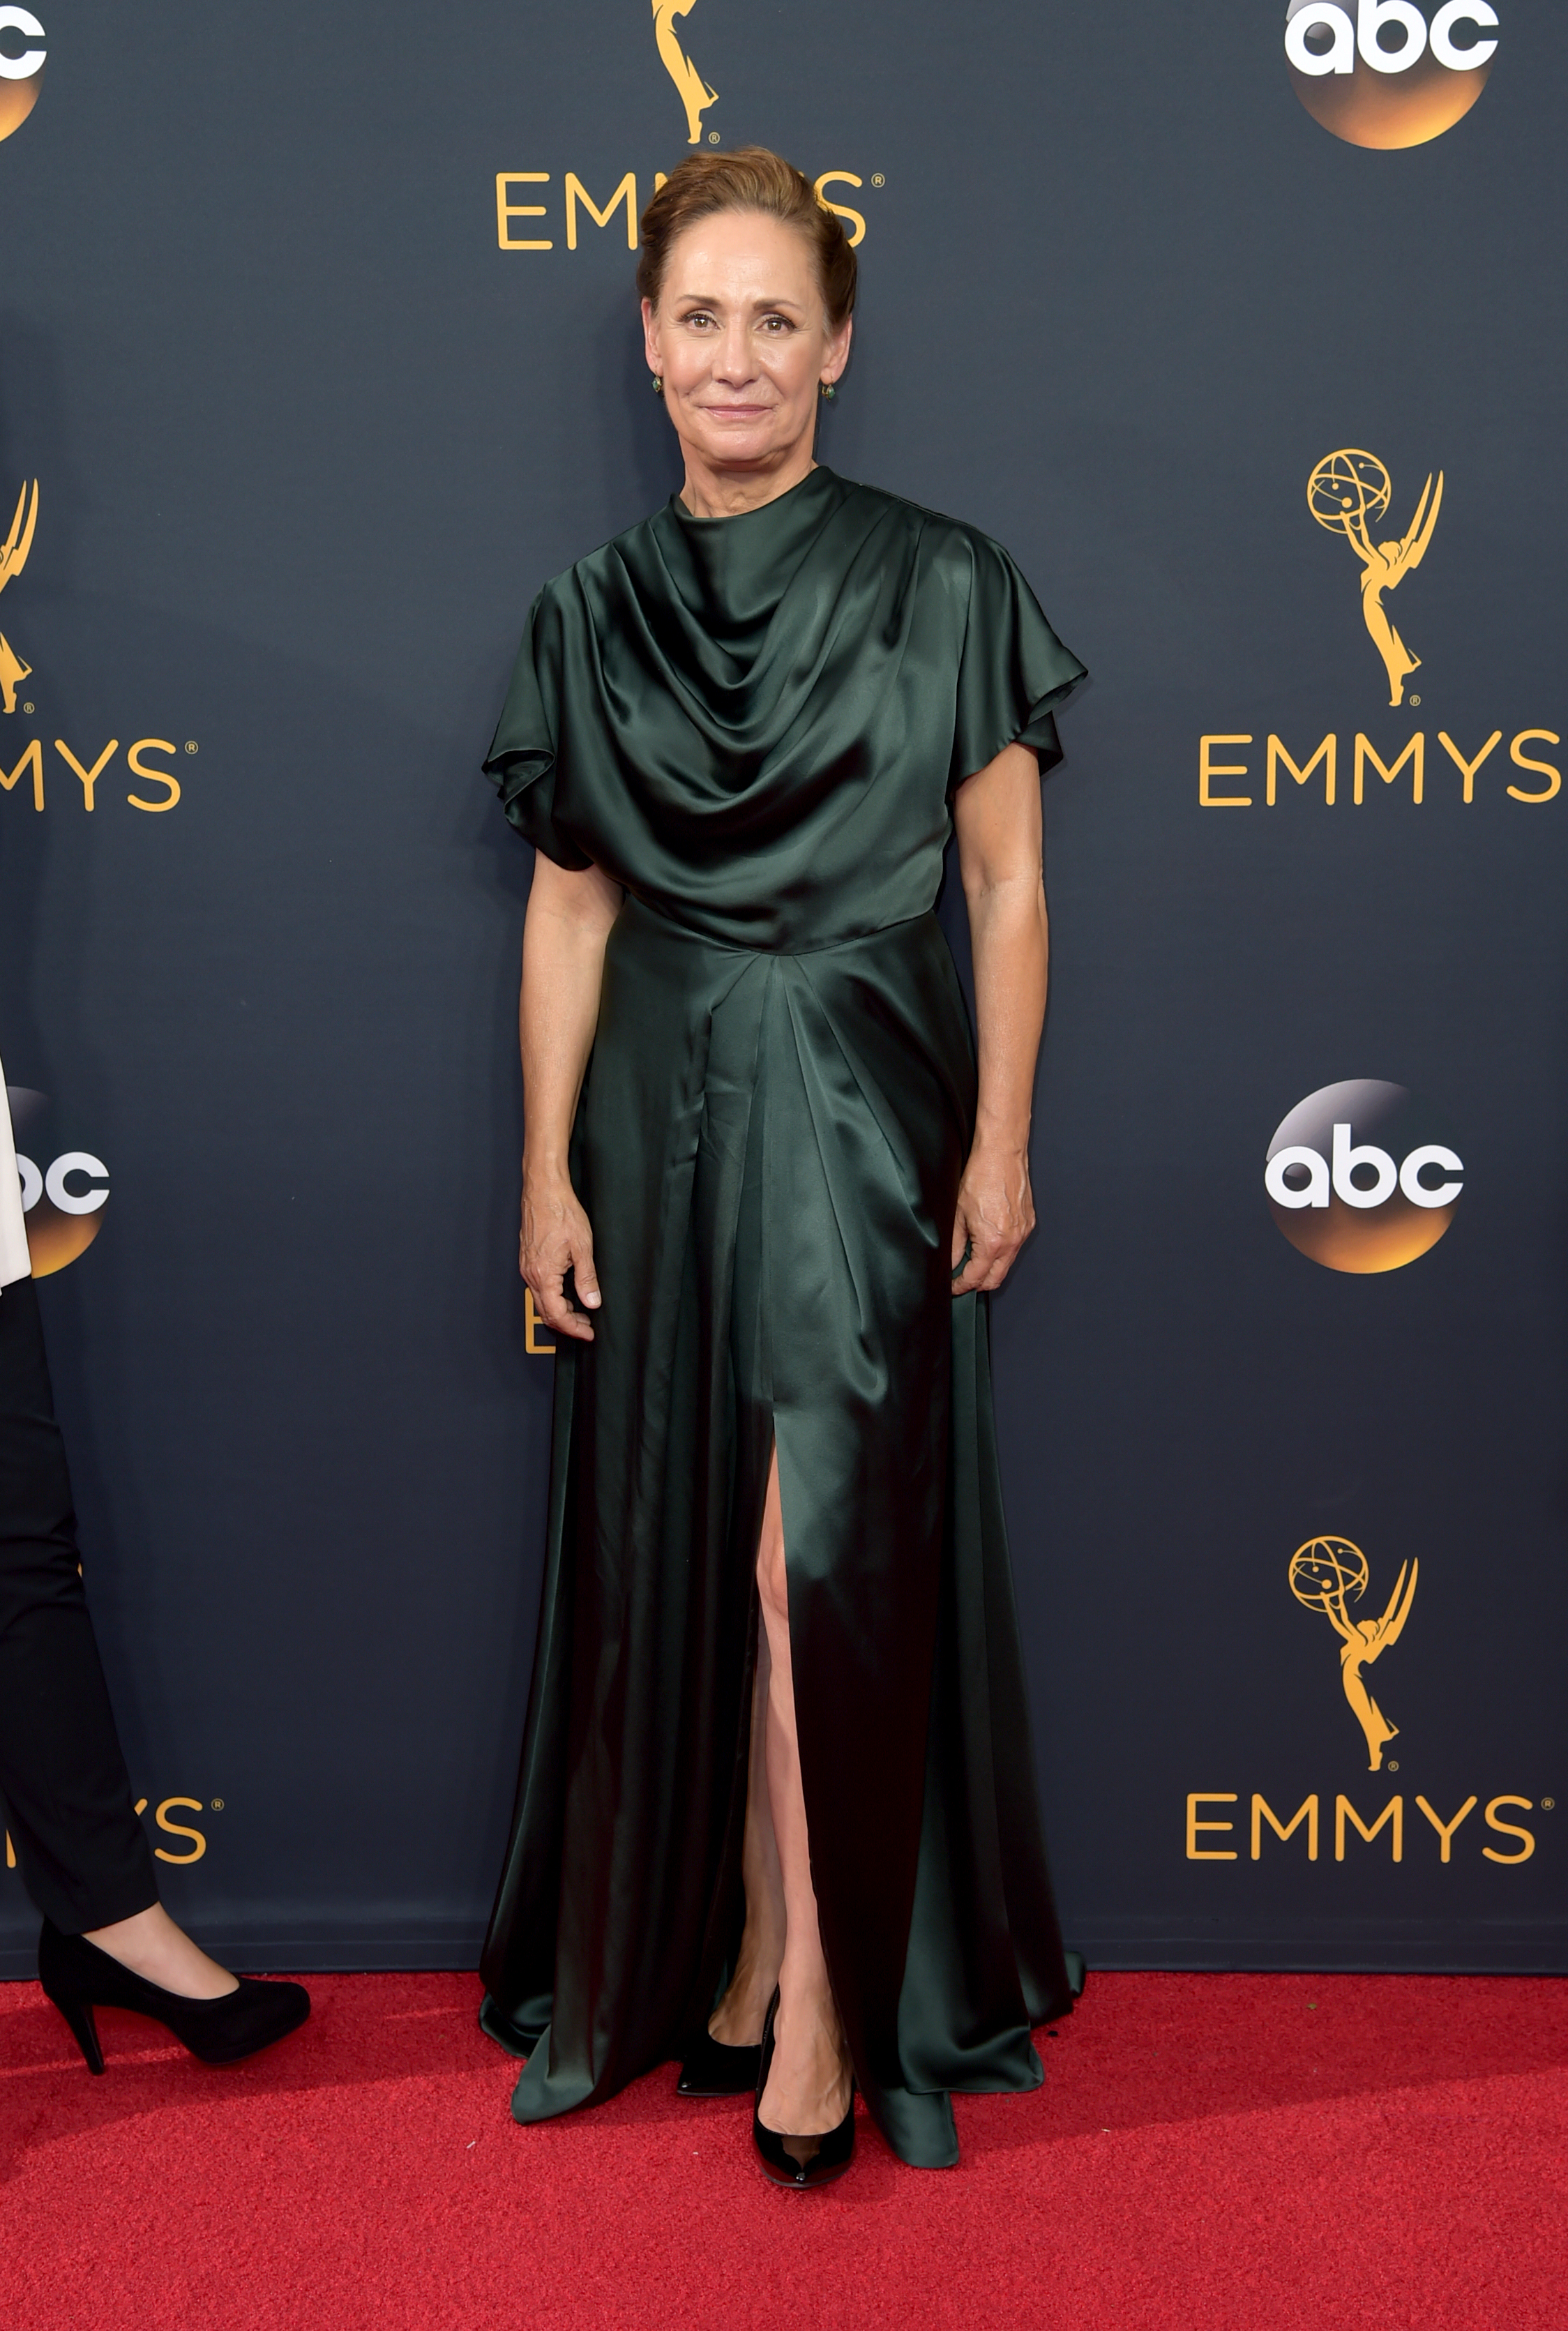 Laurie Metcalf arrives at the 68th Primetime Emmy Awards on Sunday, Sept. 18, 2016, at the Microsoft Theater in Los Angeles. (Photo by Richard Shotwell/Invision/AP)